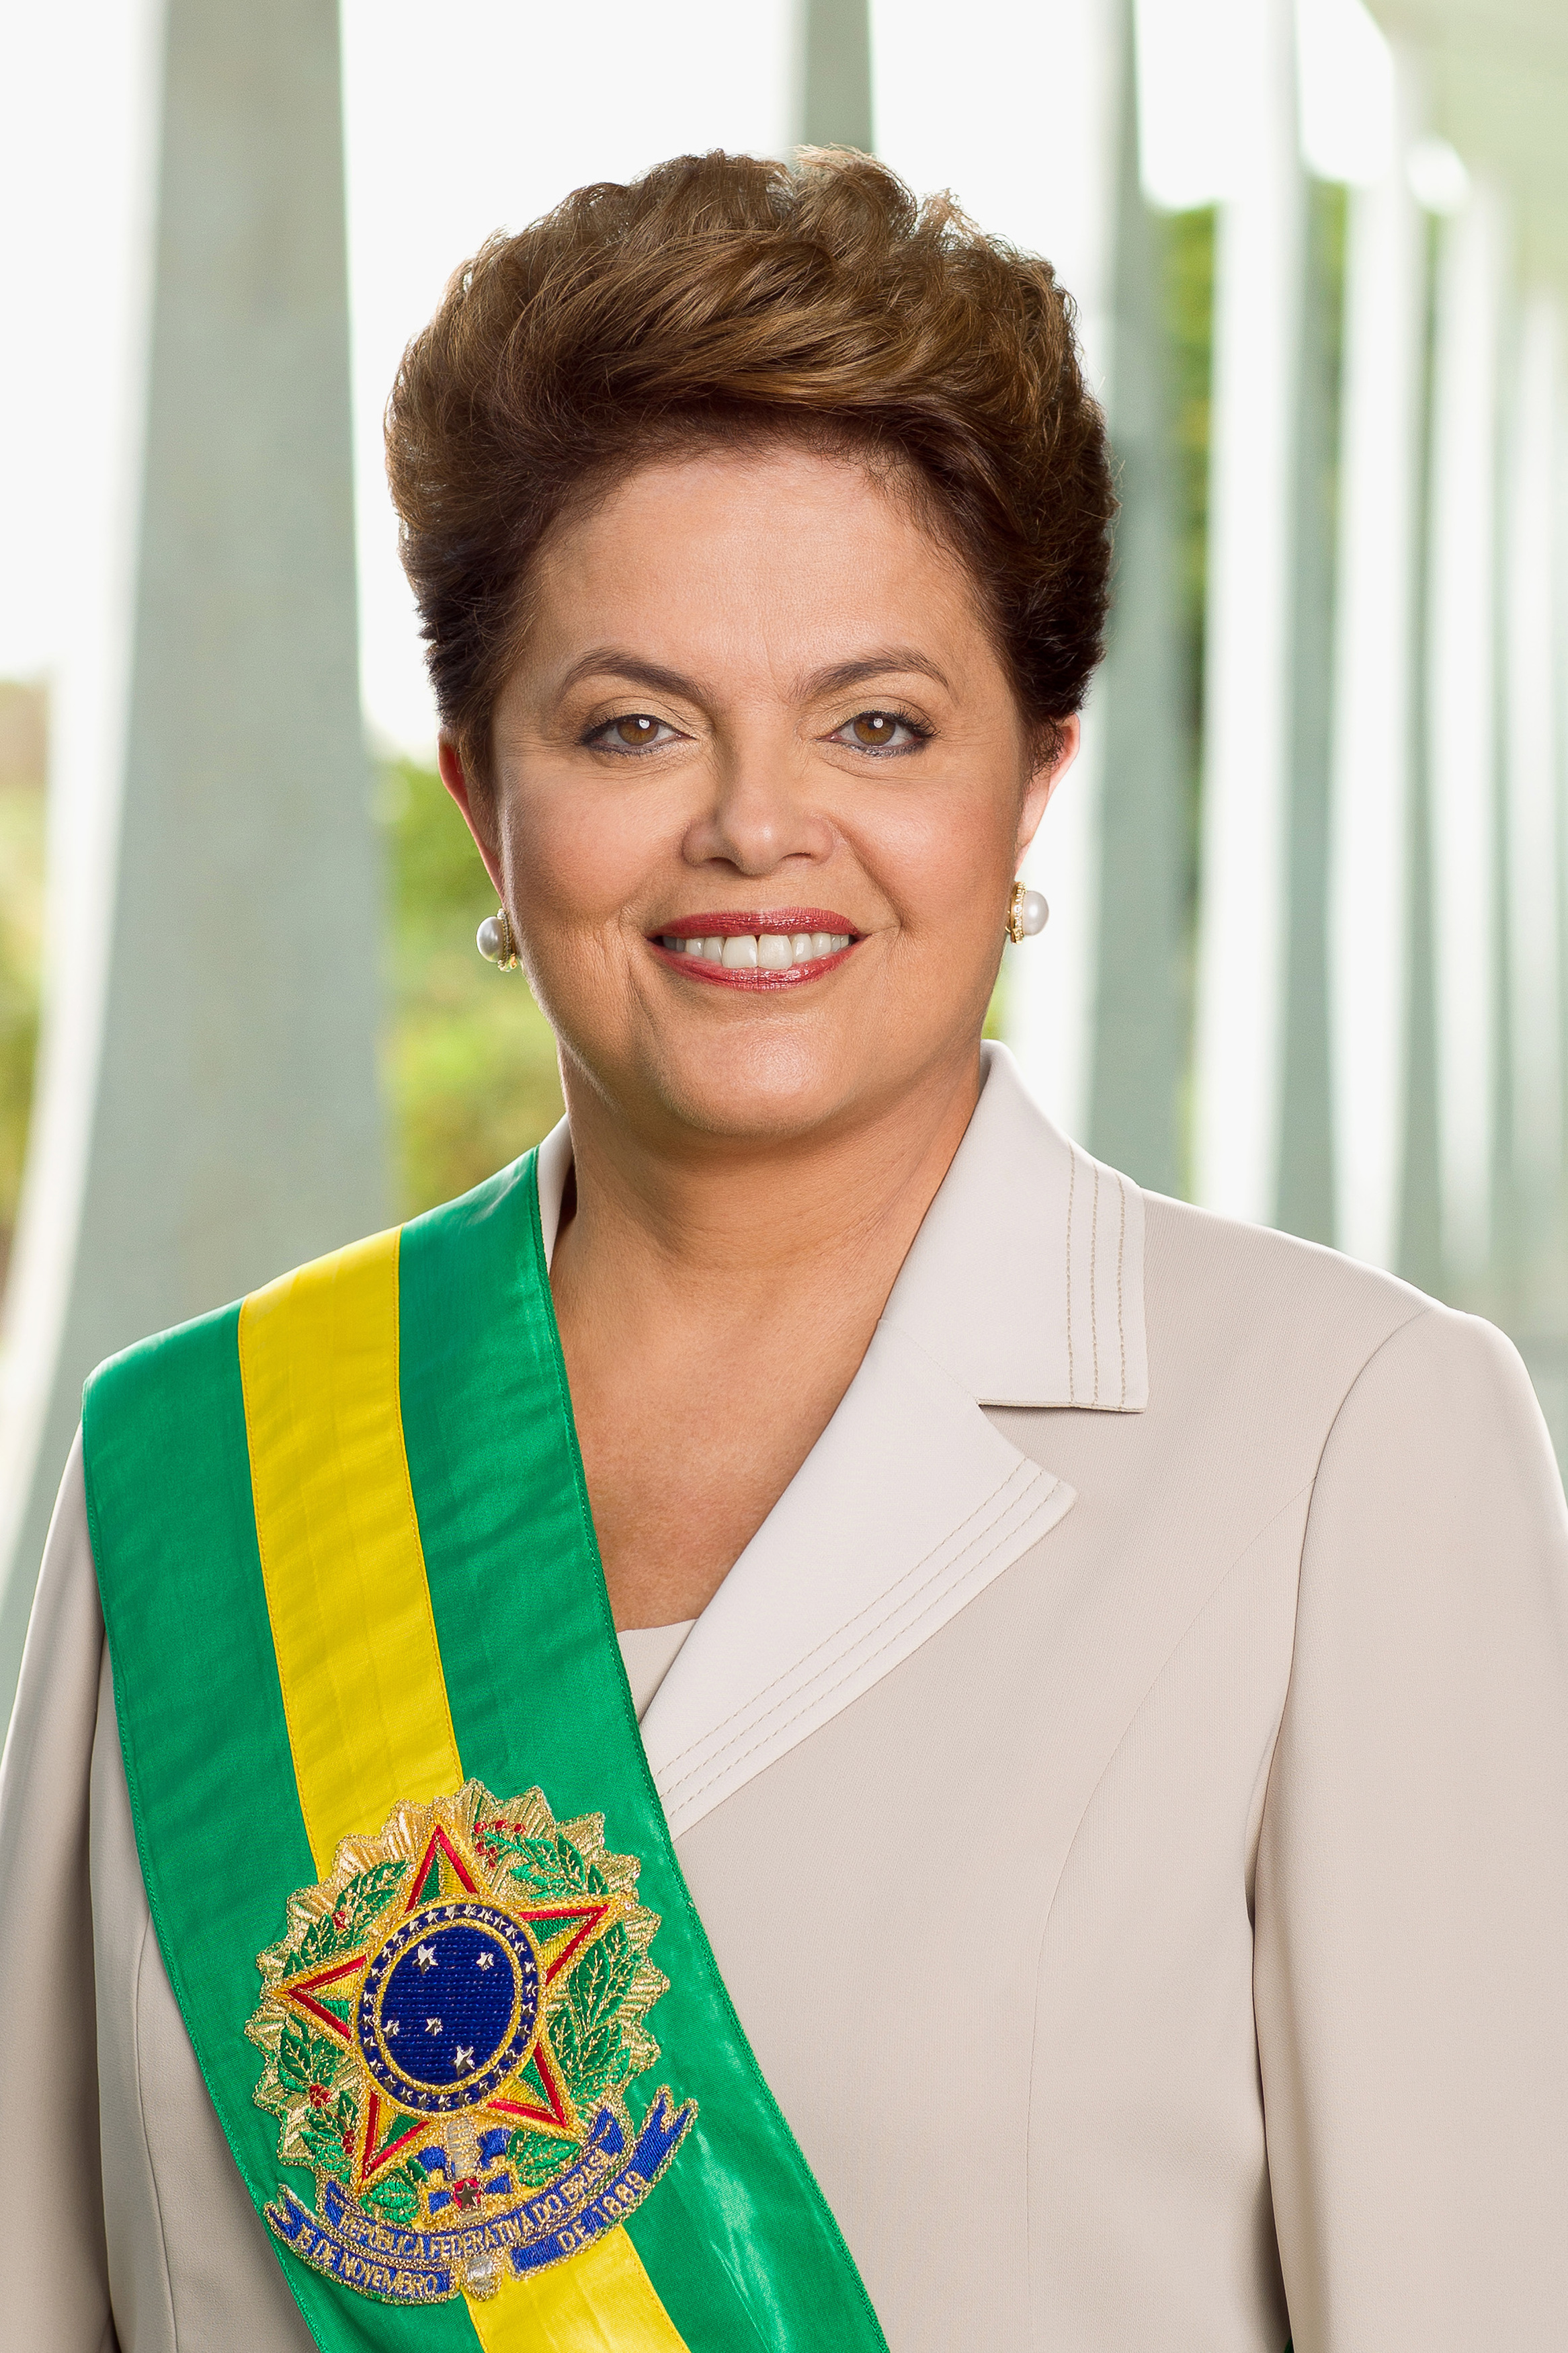 The 72-year old daughter of father (?) and mother(?) Dilma Rousseff in 2020 photo. Dilma Rousseff earned a million dollar salary - leaving the net worth at 1 million in 2020